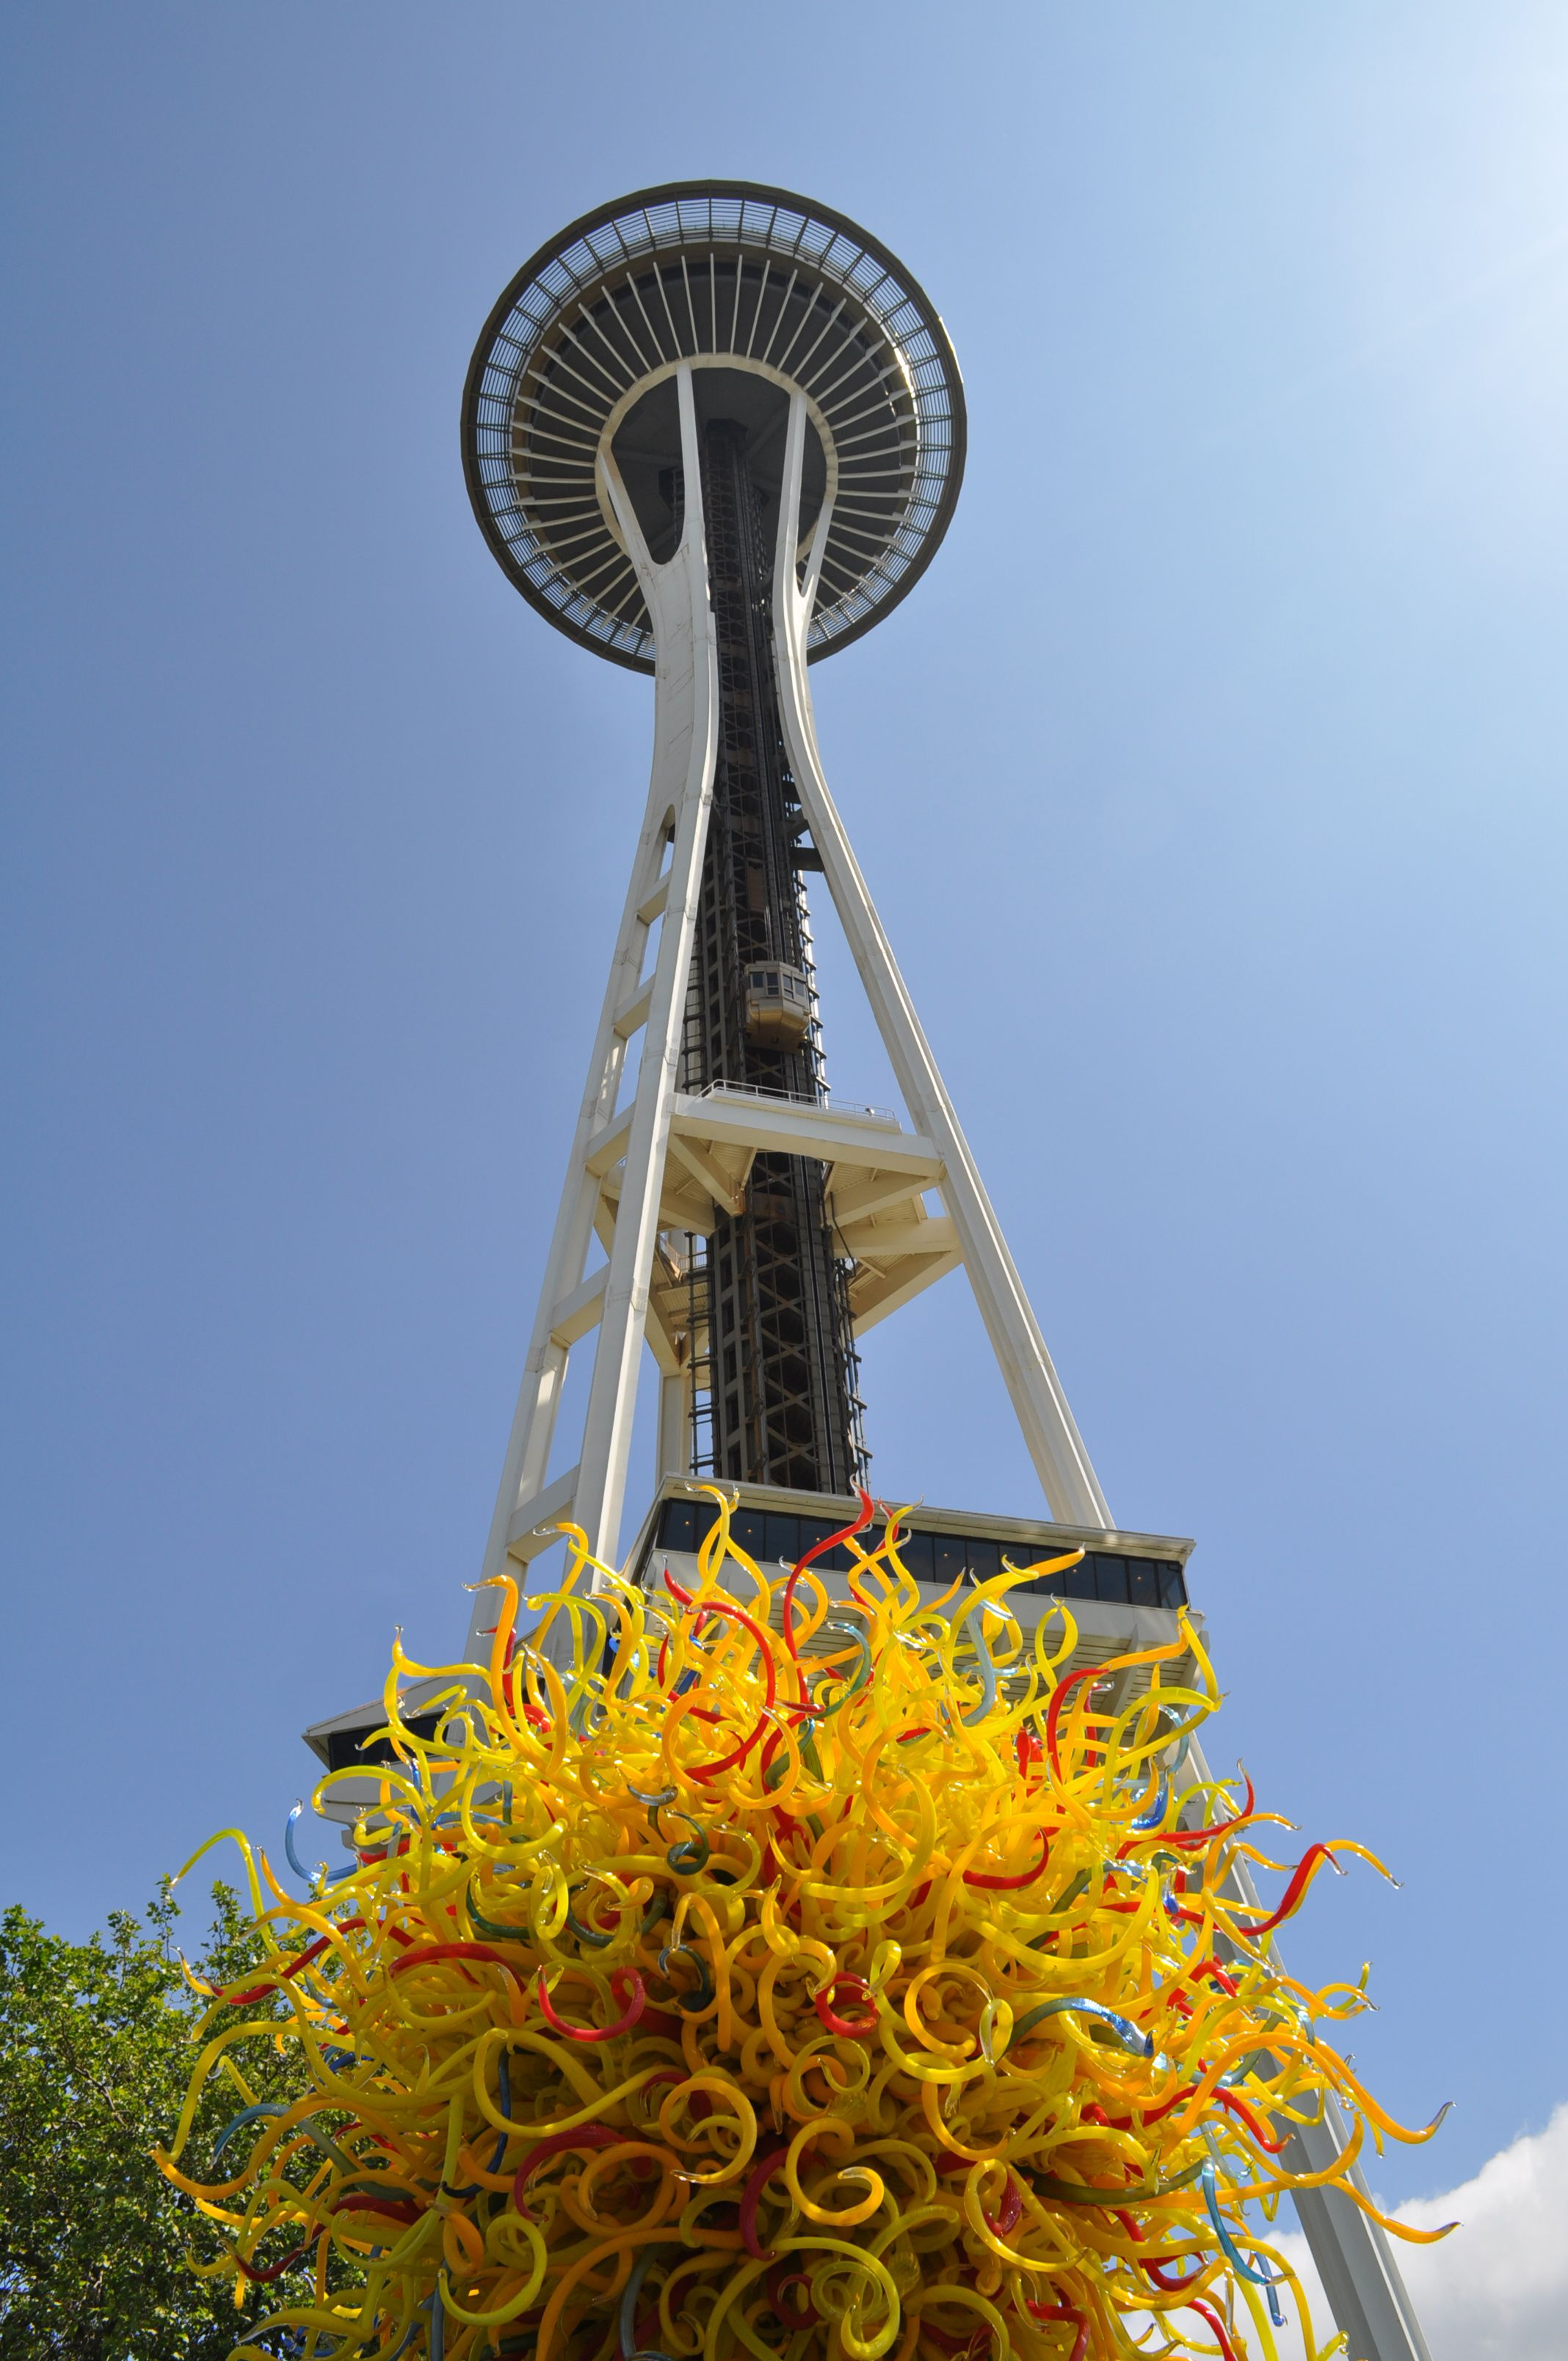 Chihuly Gardens, Seattle Center, May 2015